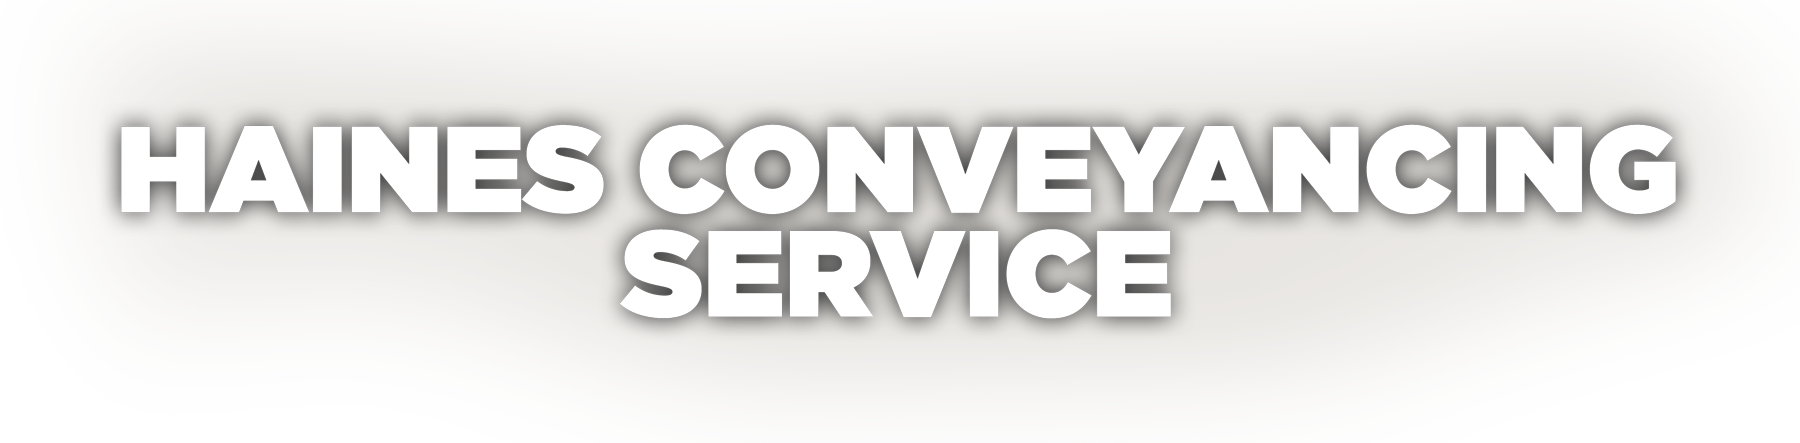 Haines Conveyancing Service